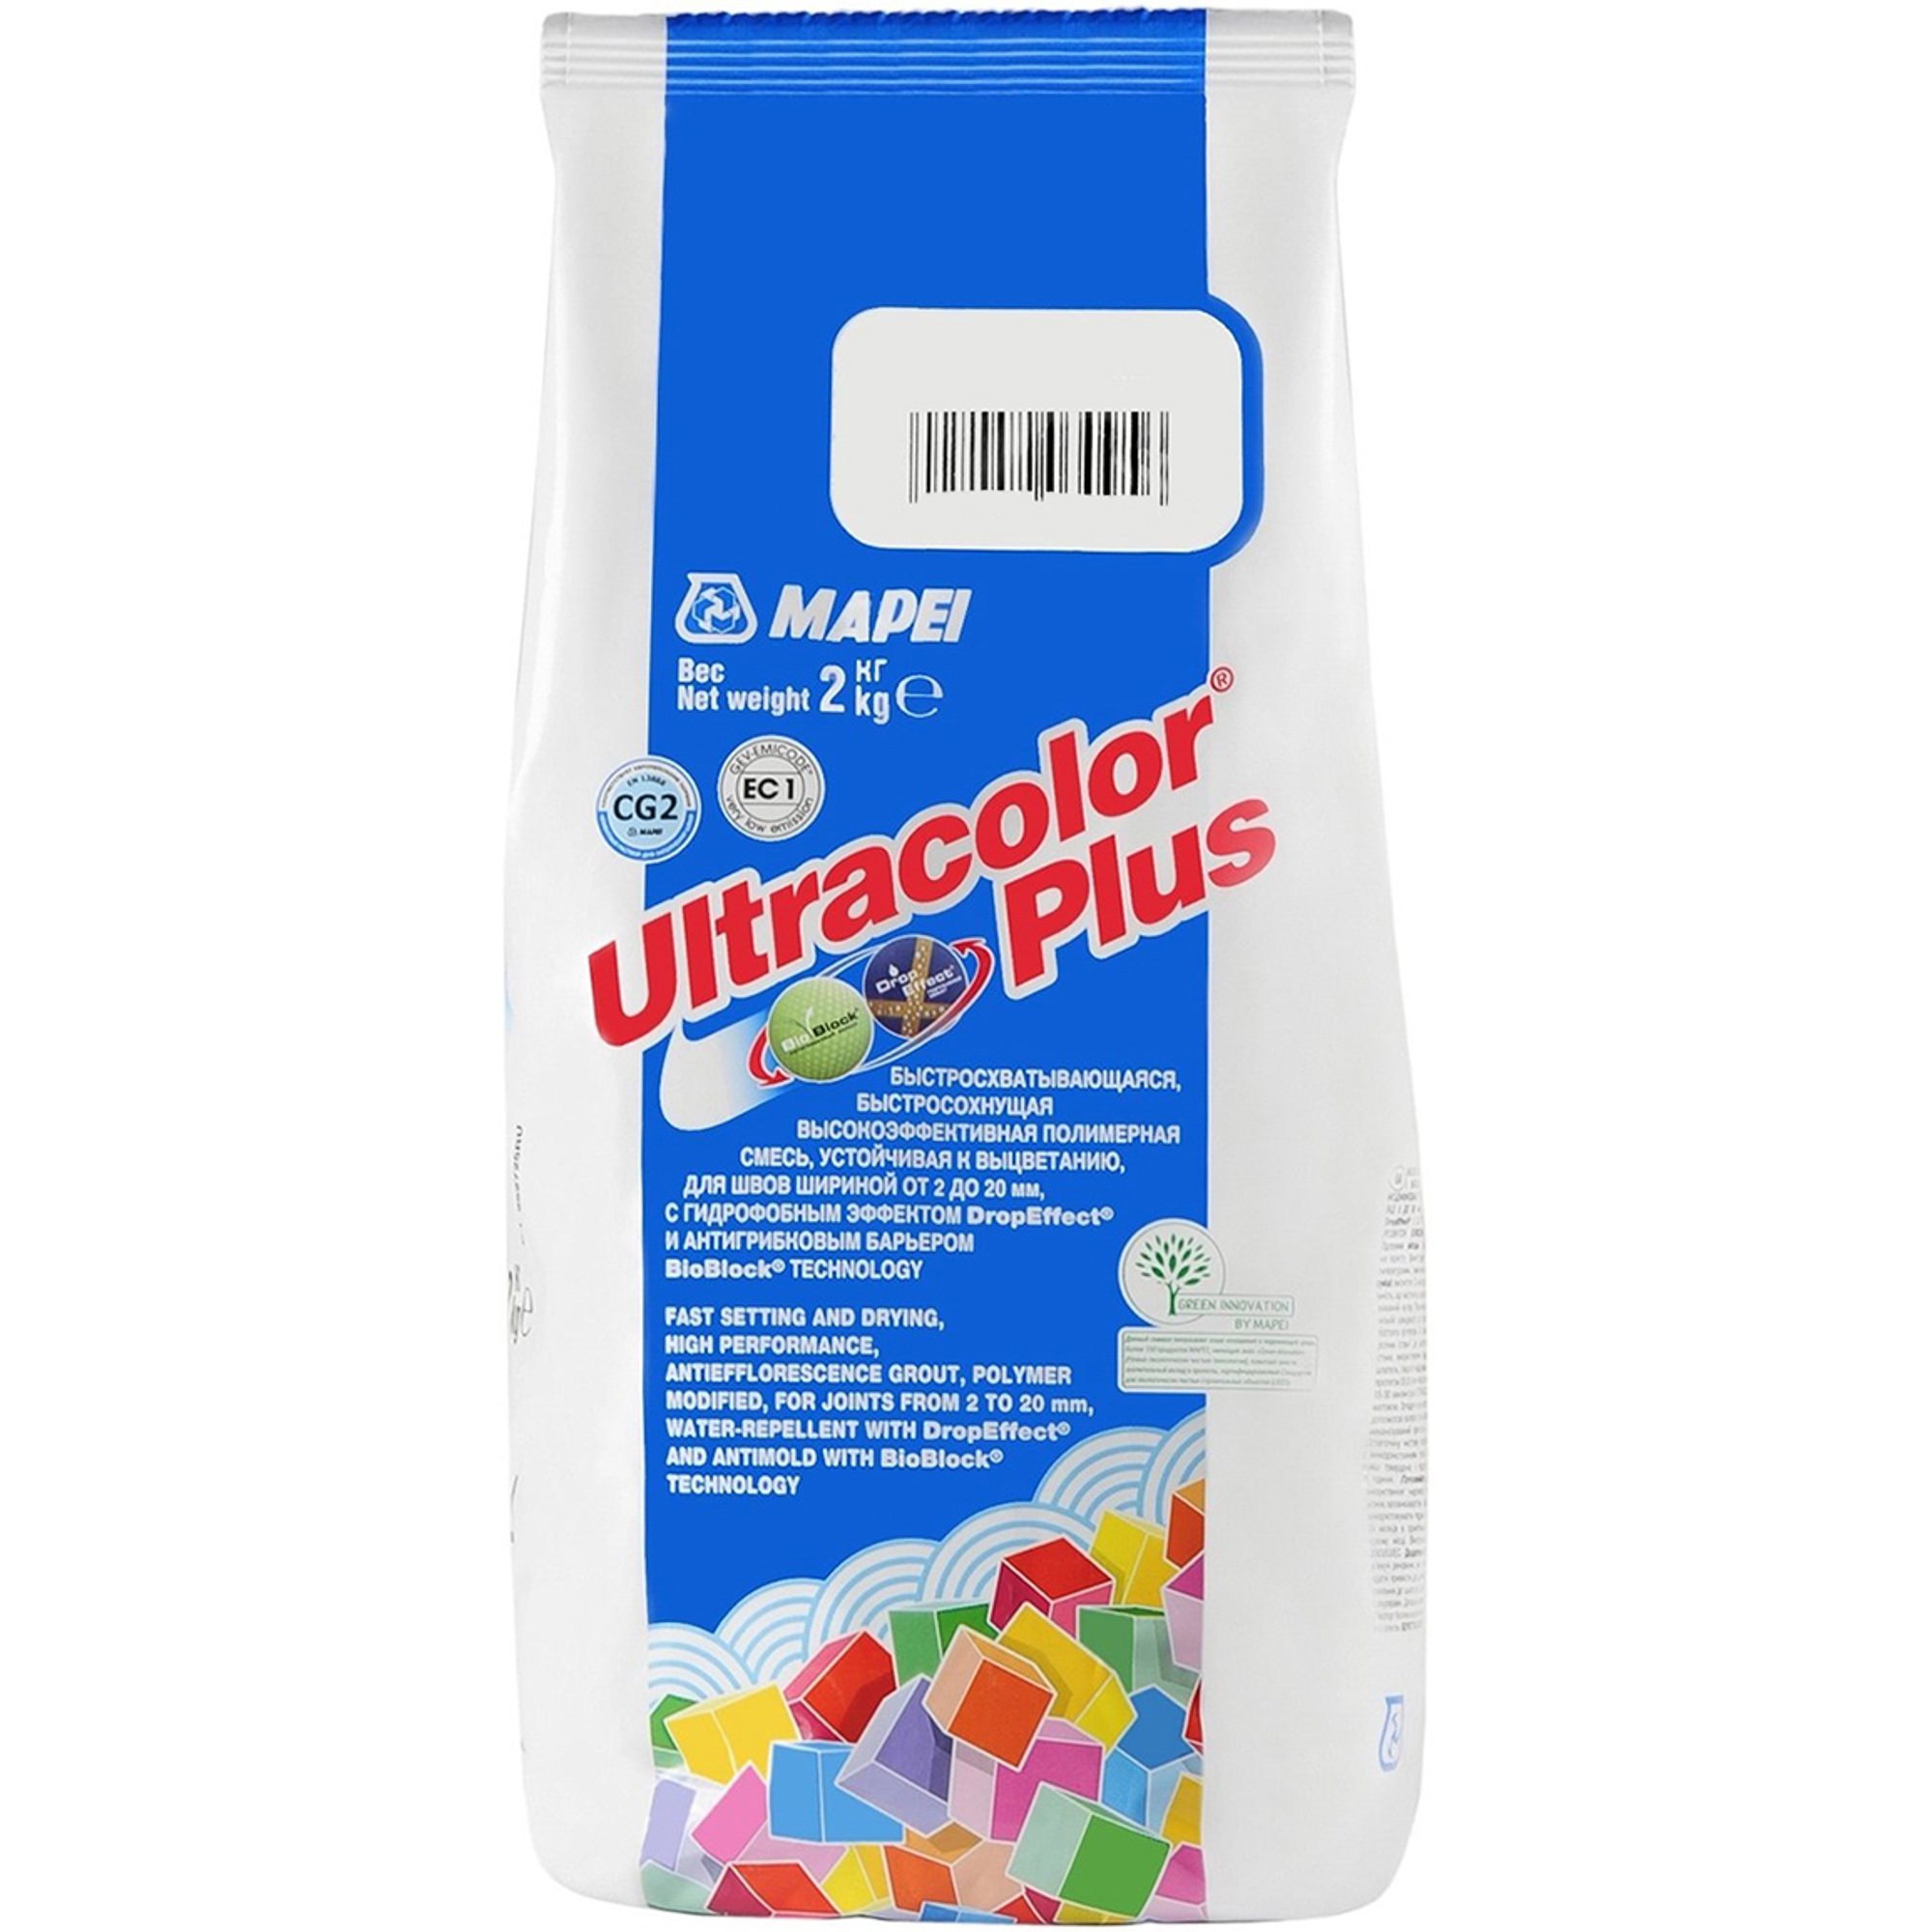 Затирка Mapei Ultracolor Plus №110 Манхеттен 2000 2 кг